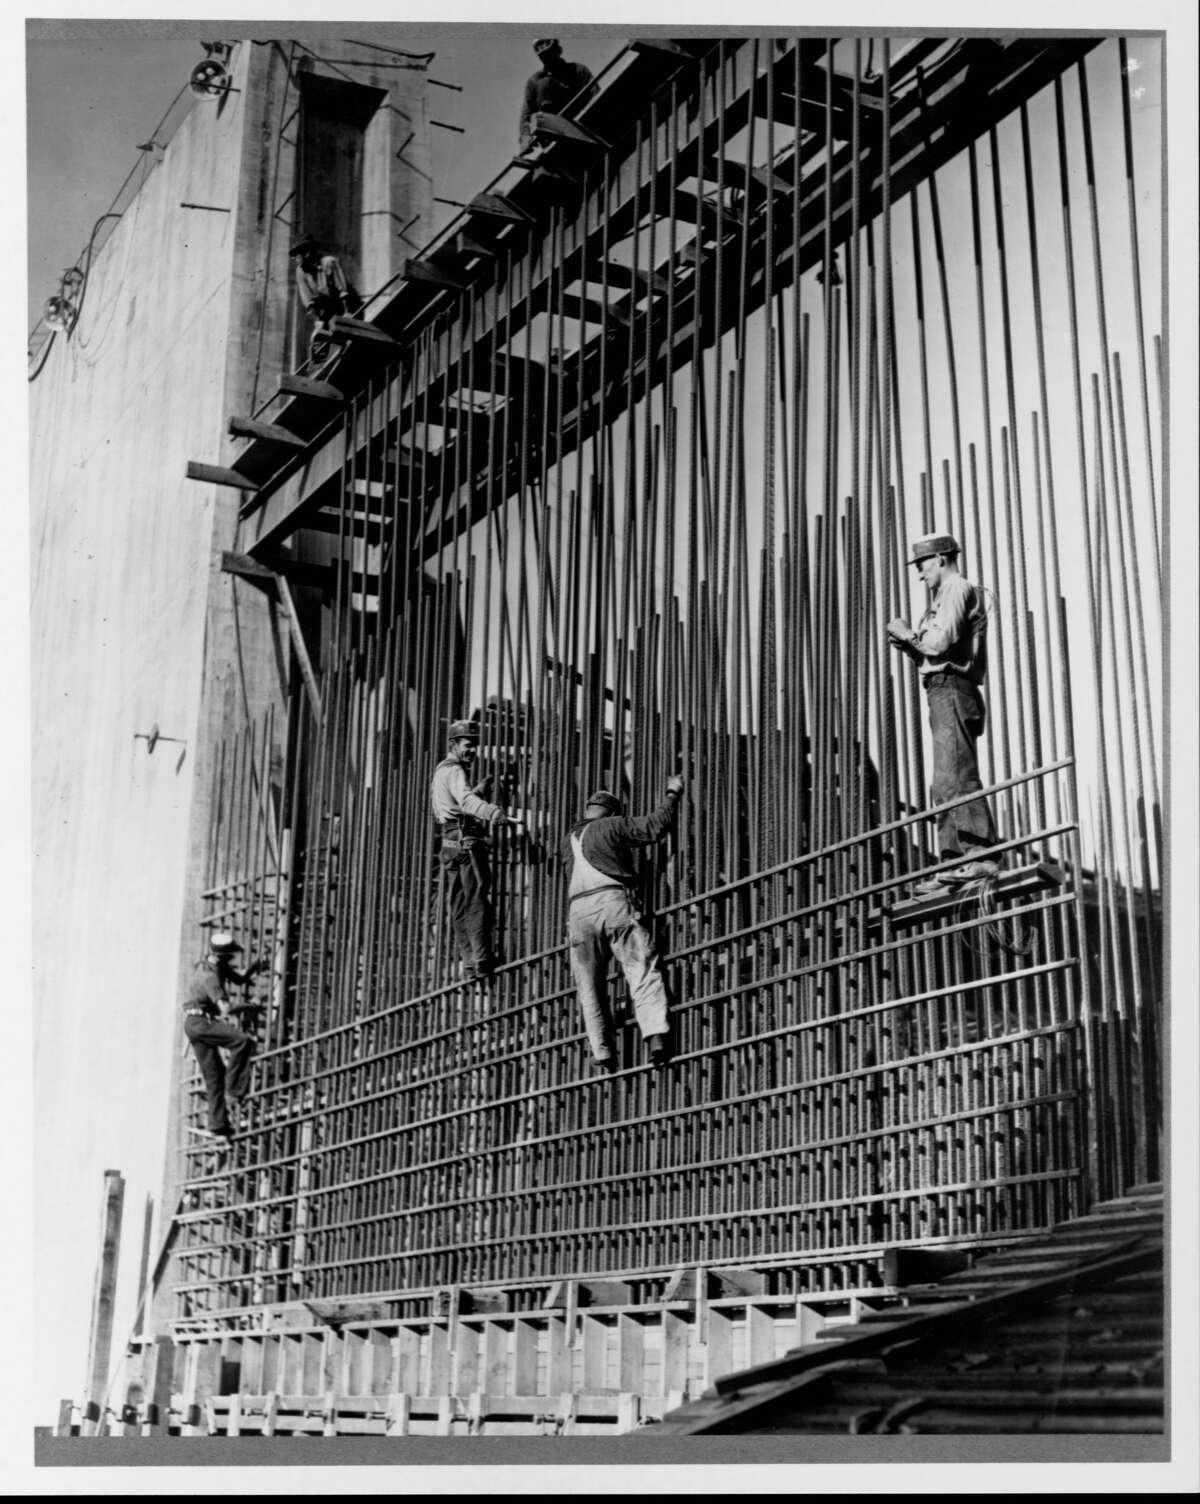 Construction workers build the steel rod frame of a wall in Grand Coulee Dam. November, 1937. (Photo by Library of Congress/Corbis/VCG via Getty Images)